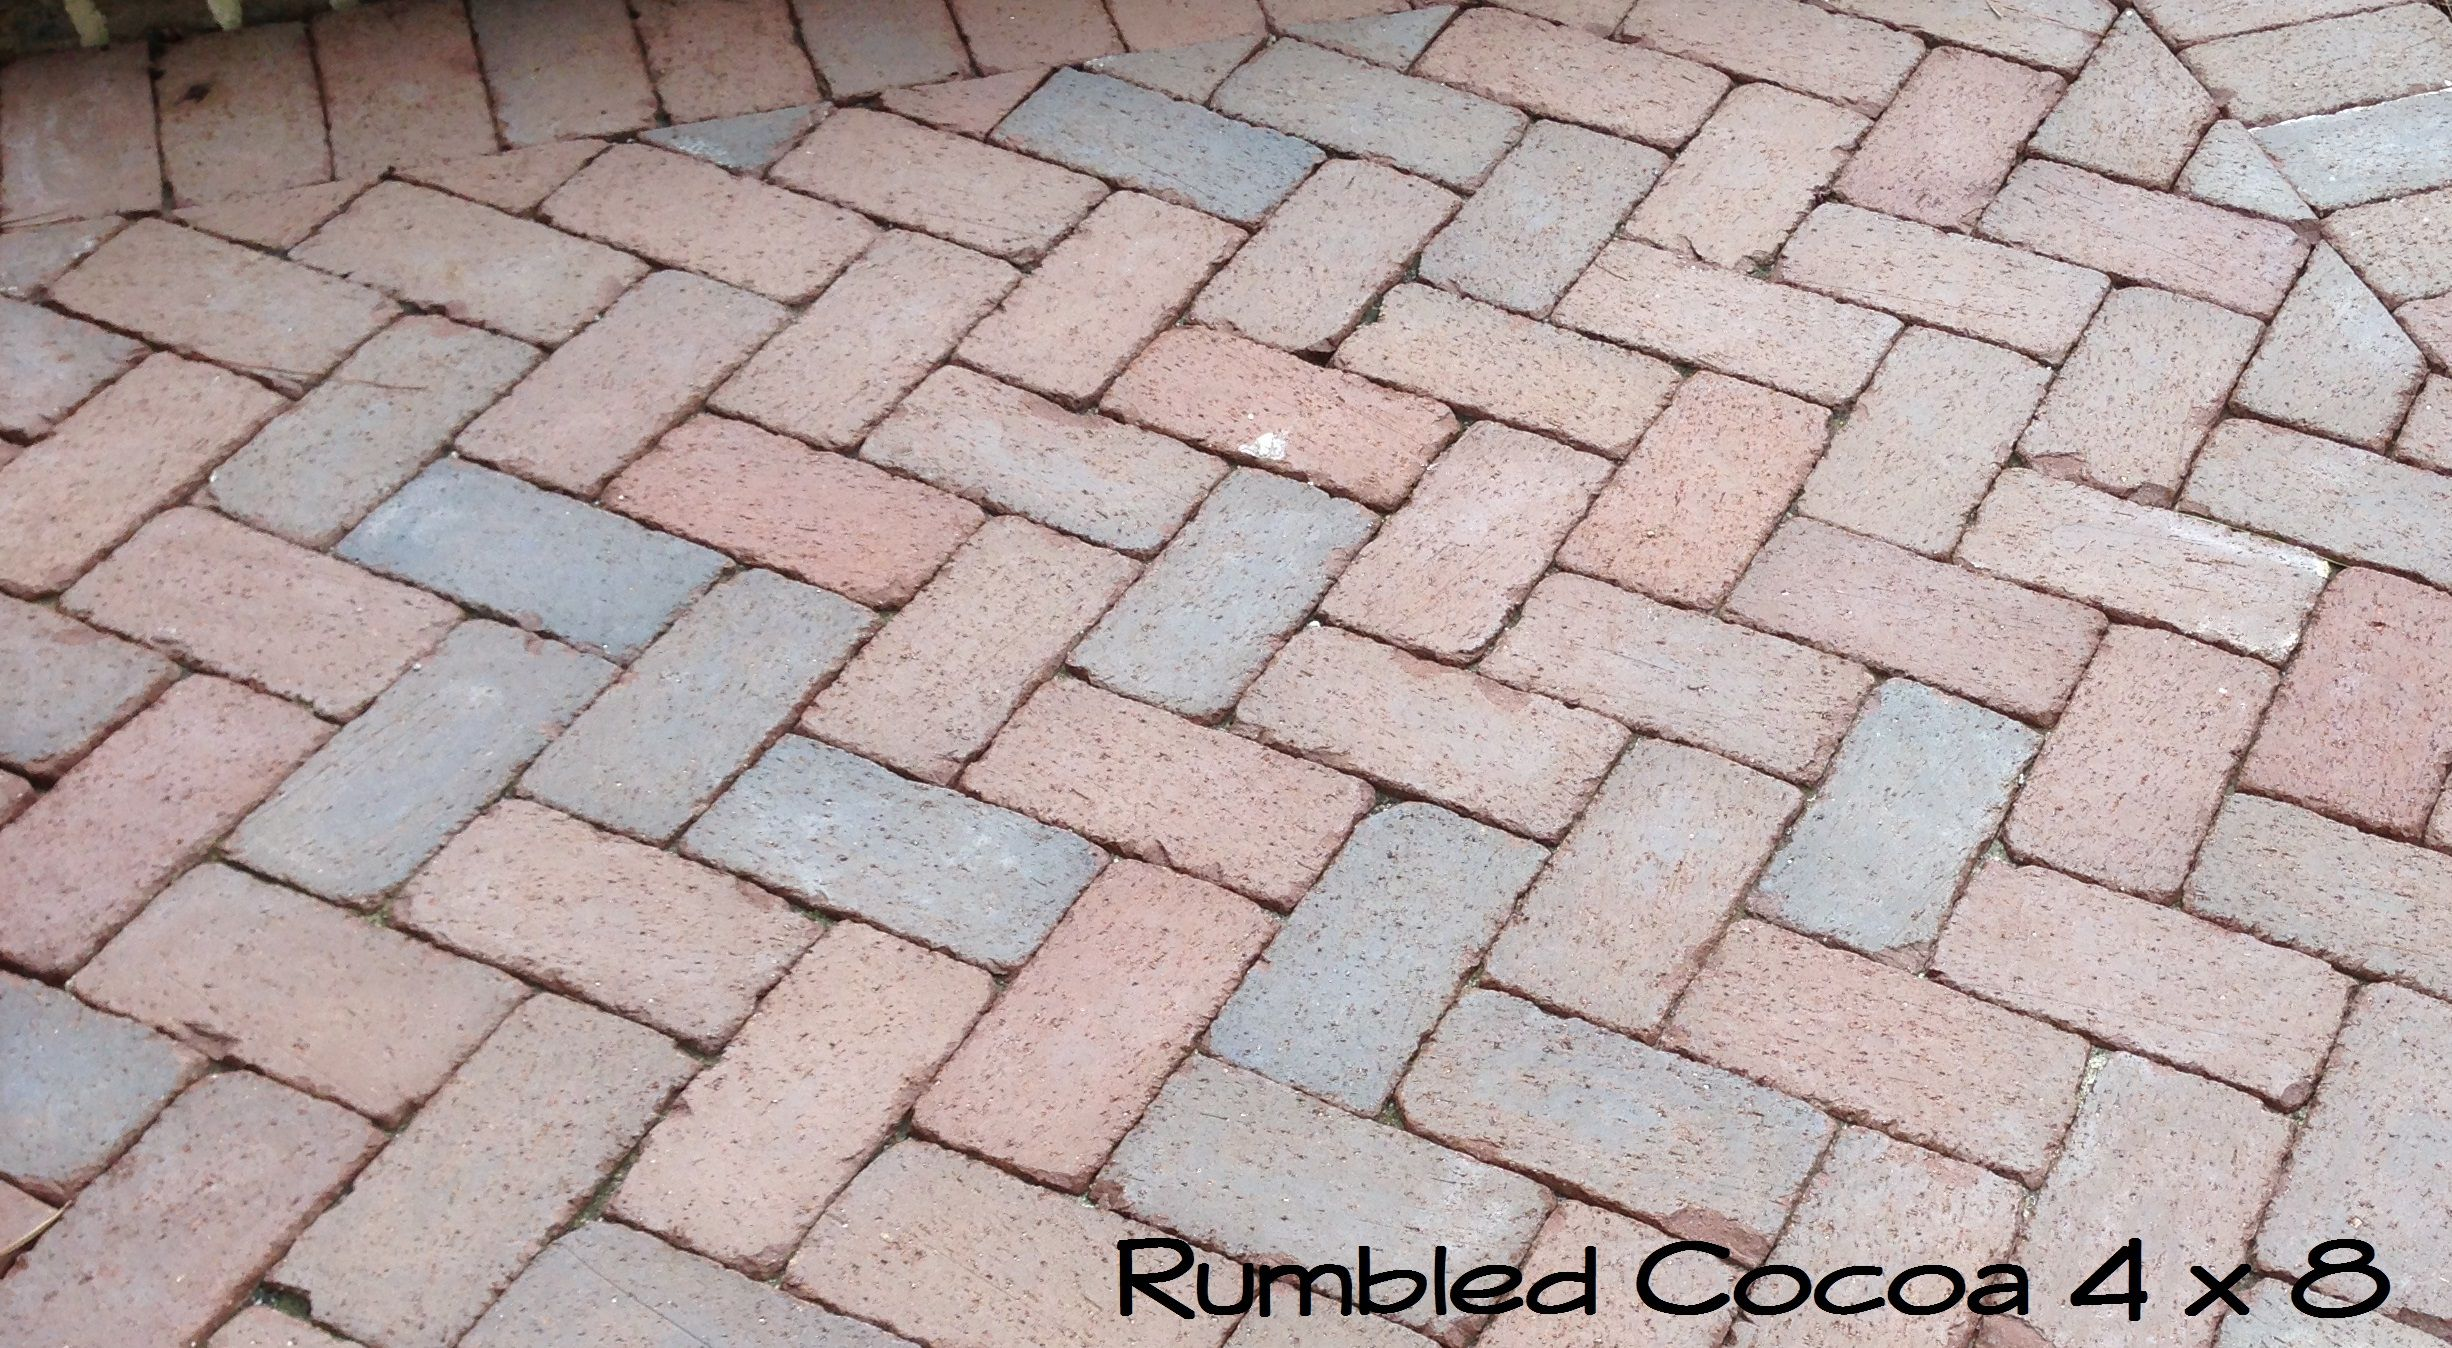 Mixed Brown And Rose Tones Predominate In This Rumbled Cocoa Patio Laid In A Herringbone Pattern With A Solider Border Made By Perfect Patio Back Patio Patio